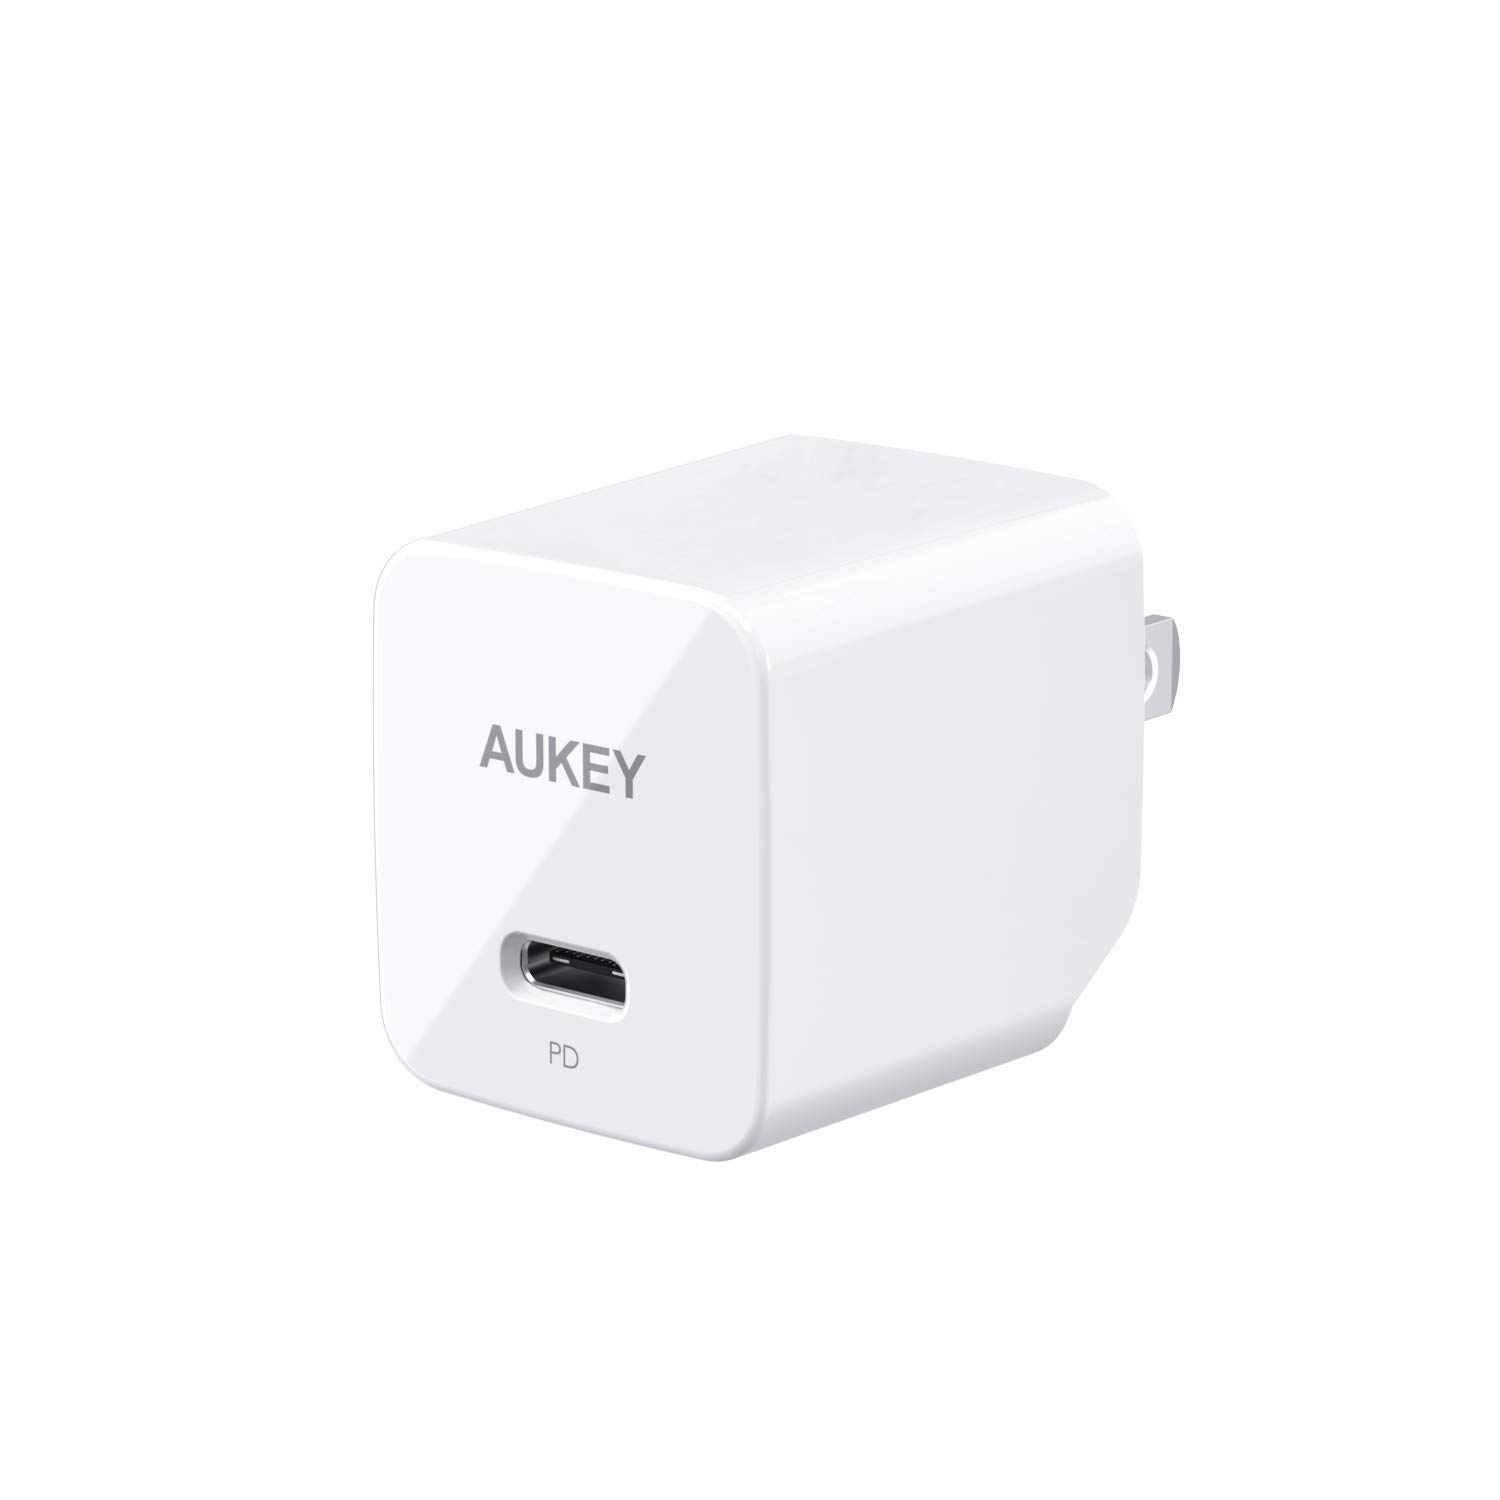 AUKEY USB-C Wall Charger 18W Power Delivery 3.0, Ultra-Compact USB C Wall Charger, Compatible iPhone Xs/XS Max/XR, Google Pixel 2/2 XL, Samsung Galaxy S9+ / Note8 and More